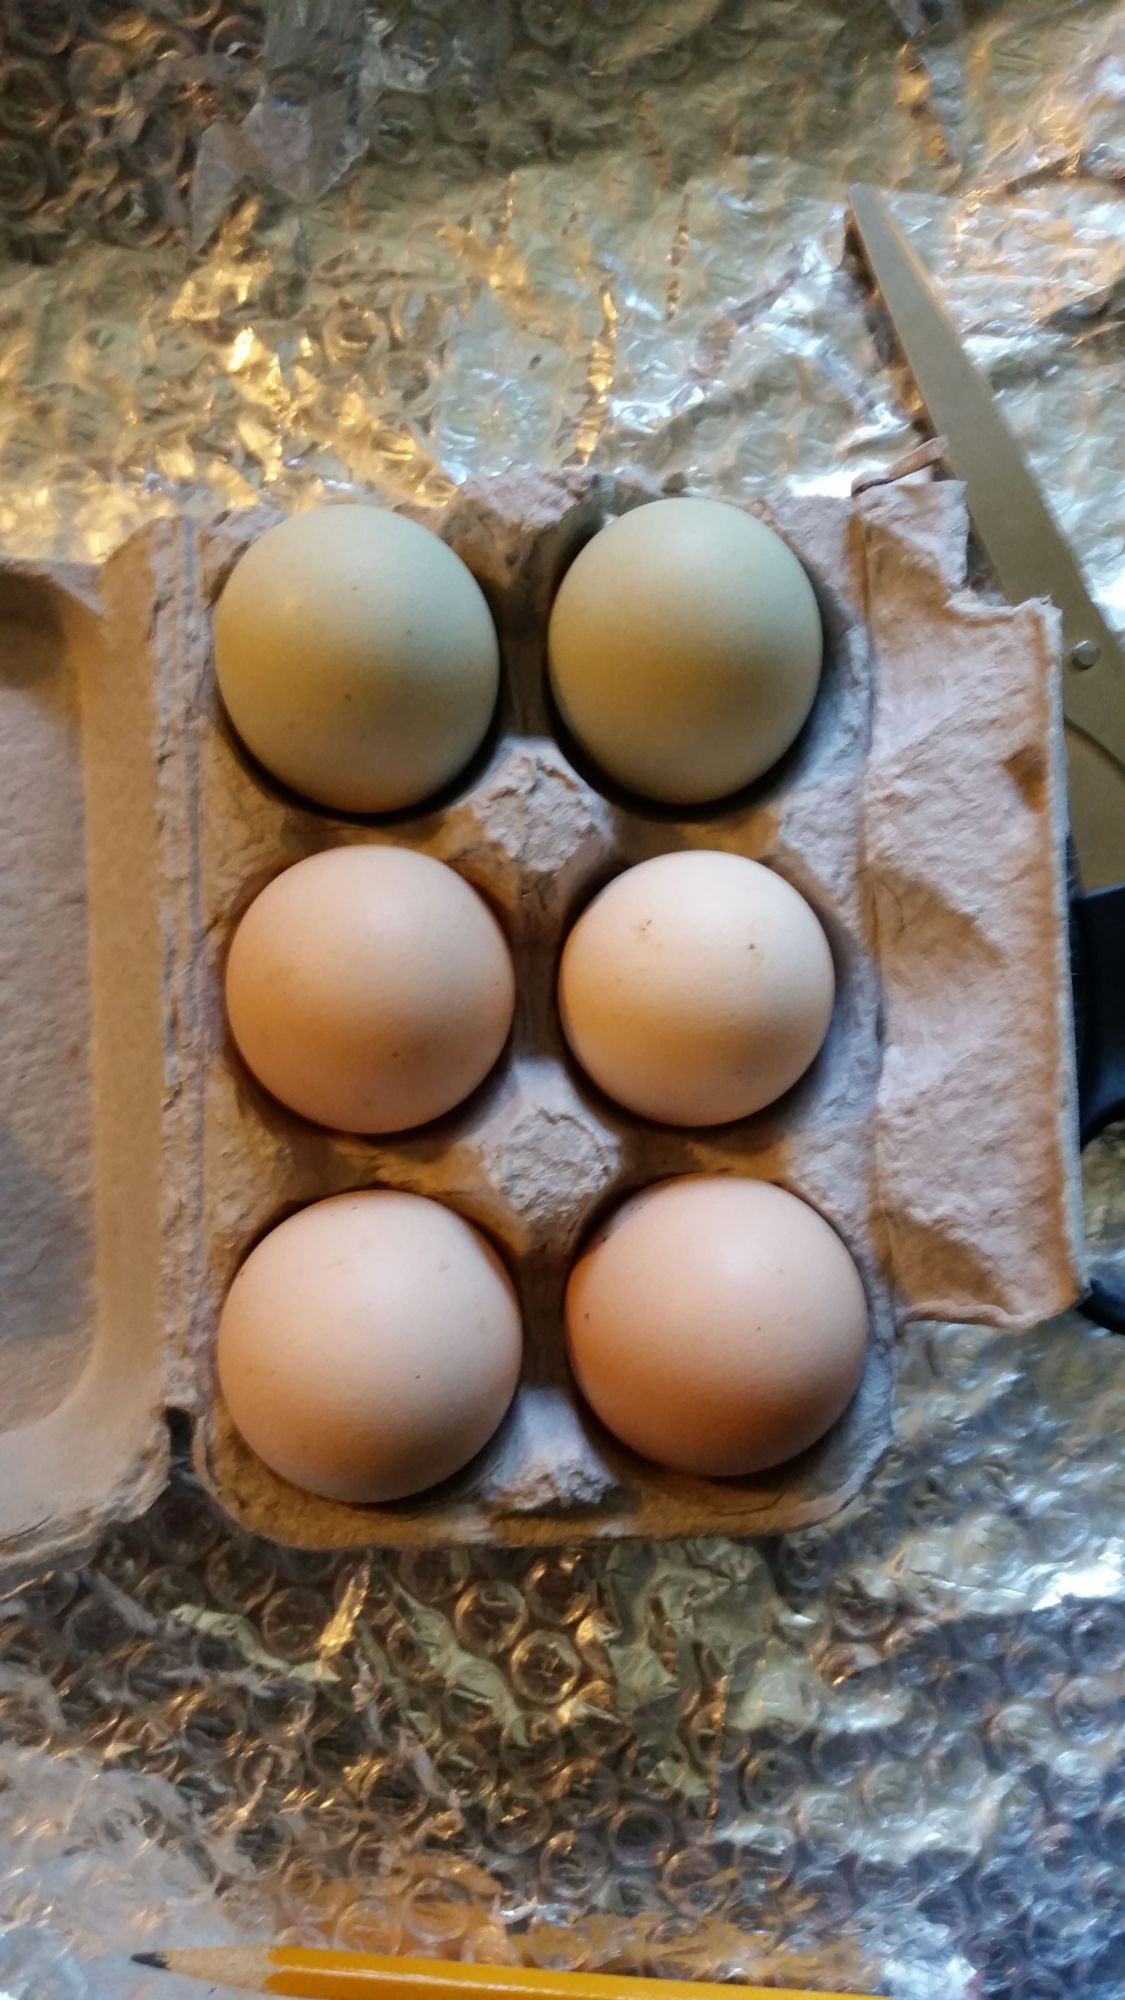 Pyxis's photos in Ayam Cemani Hatching Eggs